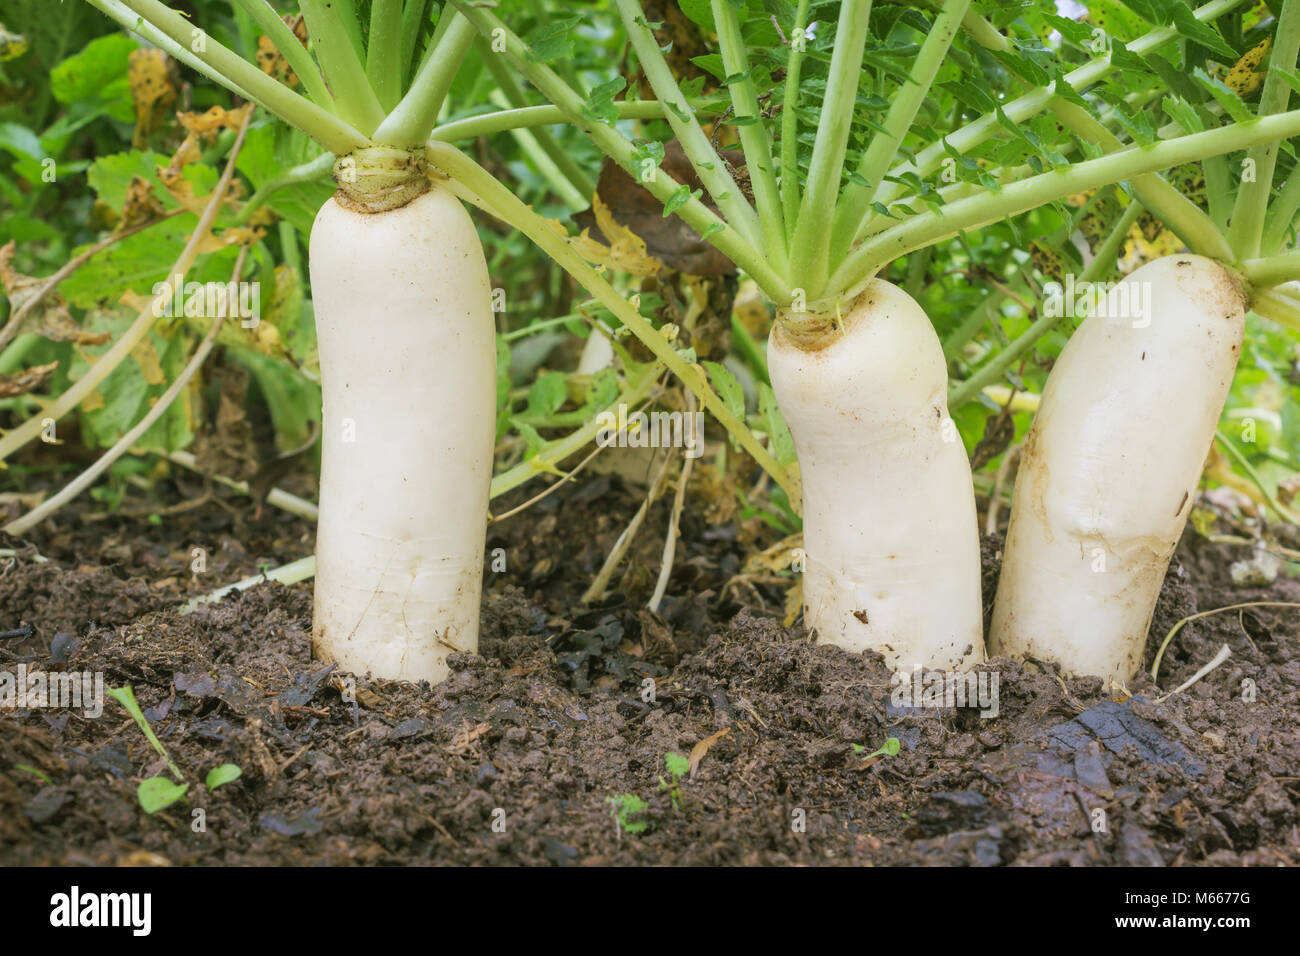 Japanese radishes, daikon, growing in a farm in october - Stock Image